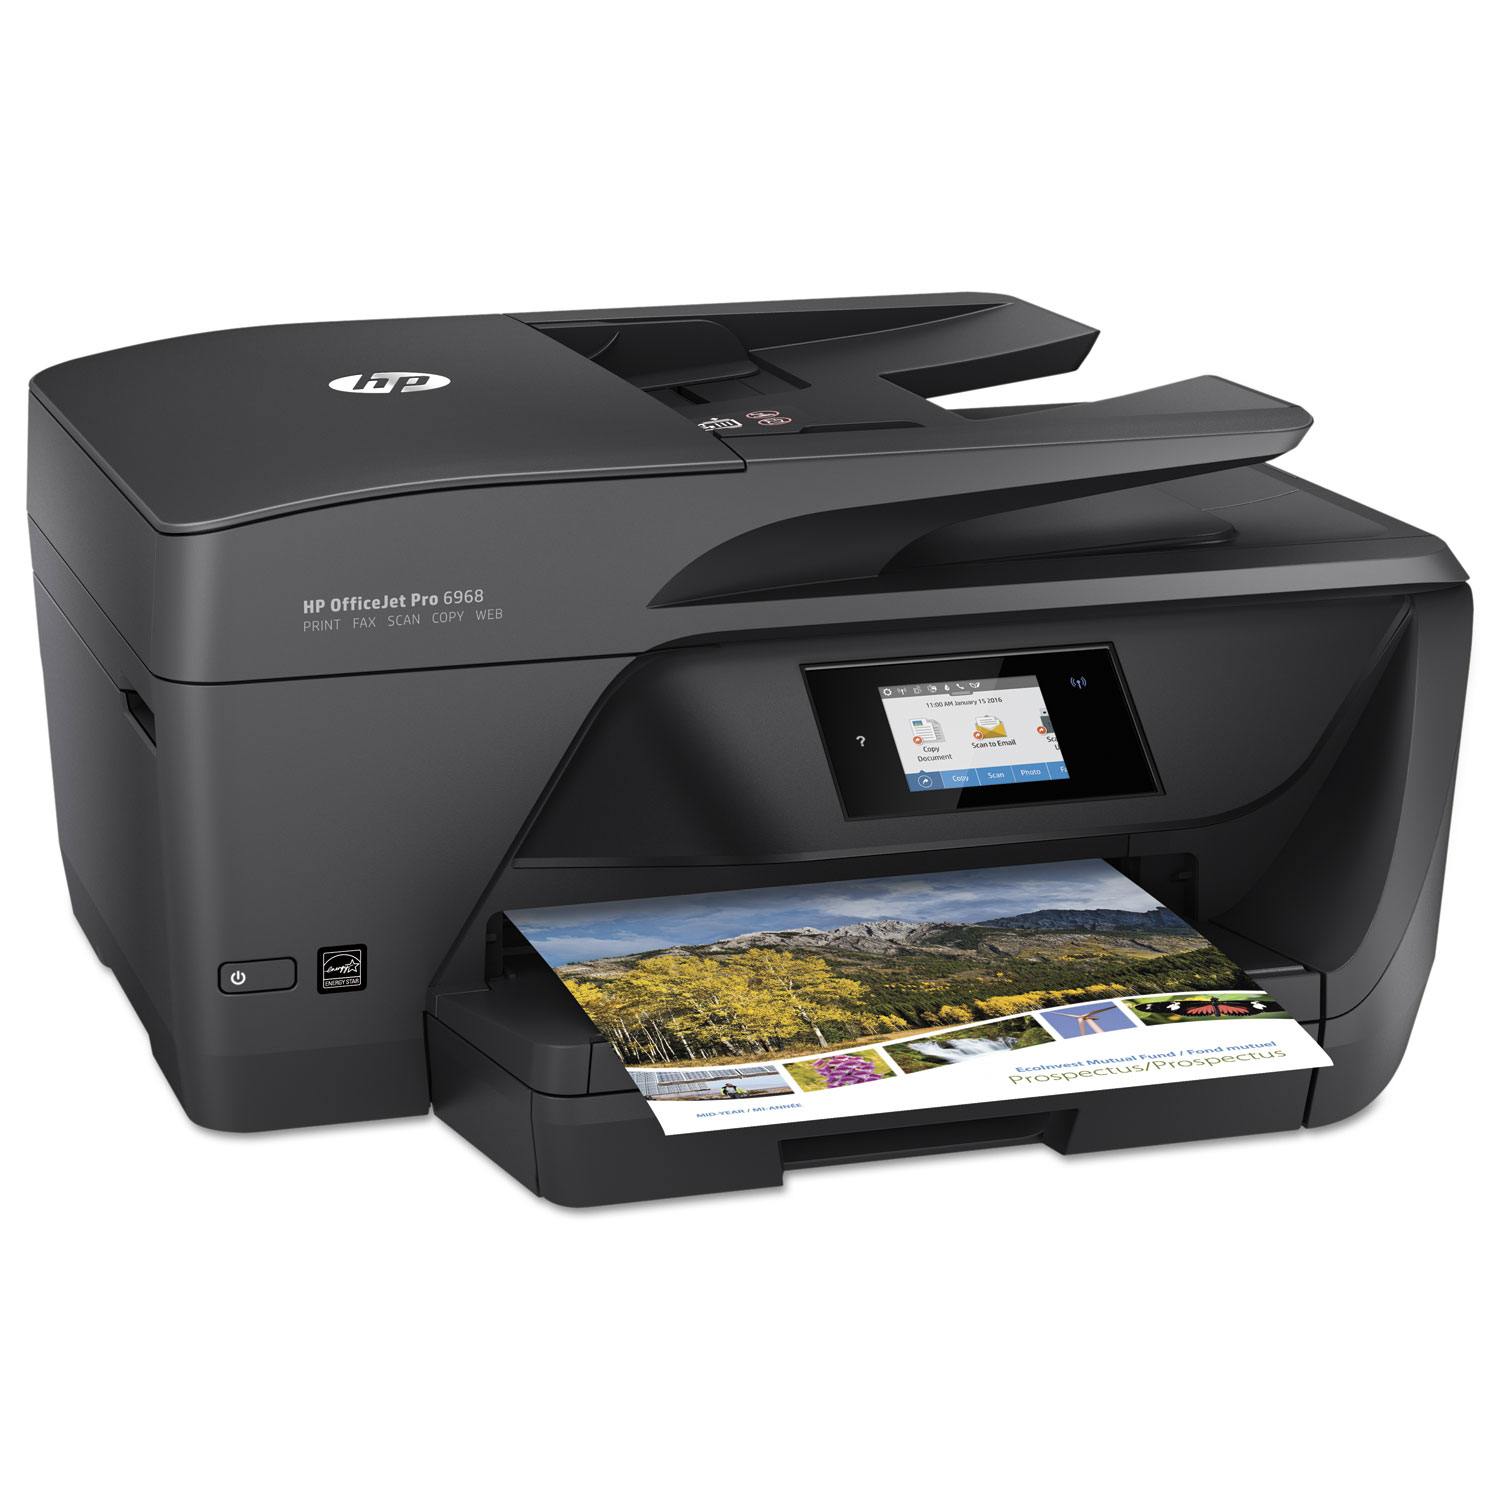 HP OfficeJet Pro 6968 All-in-One Printer, Copy/Fax/Print/Scan